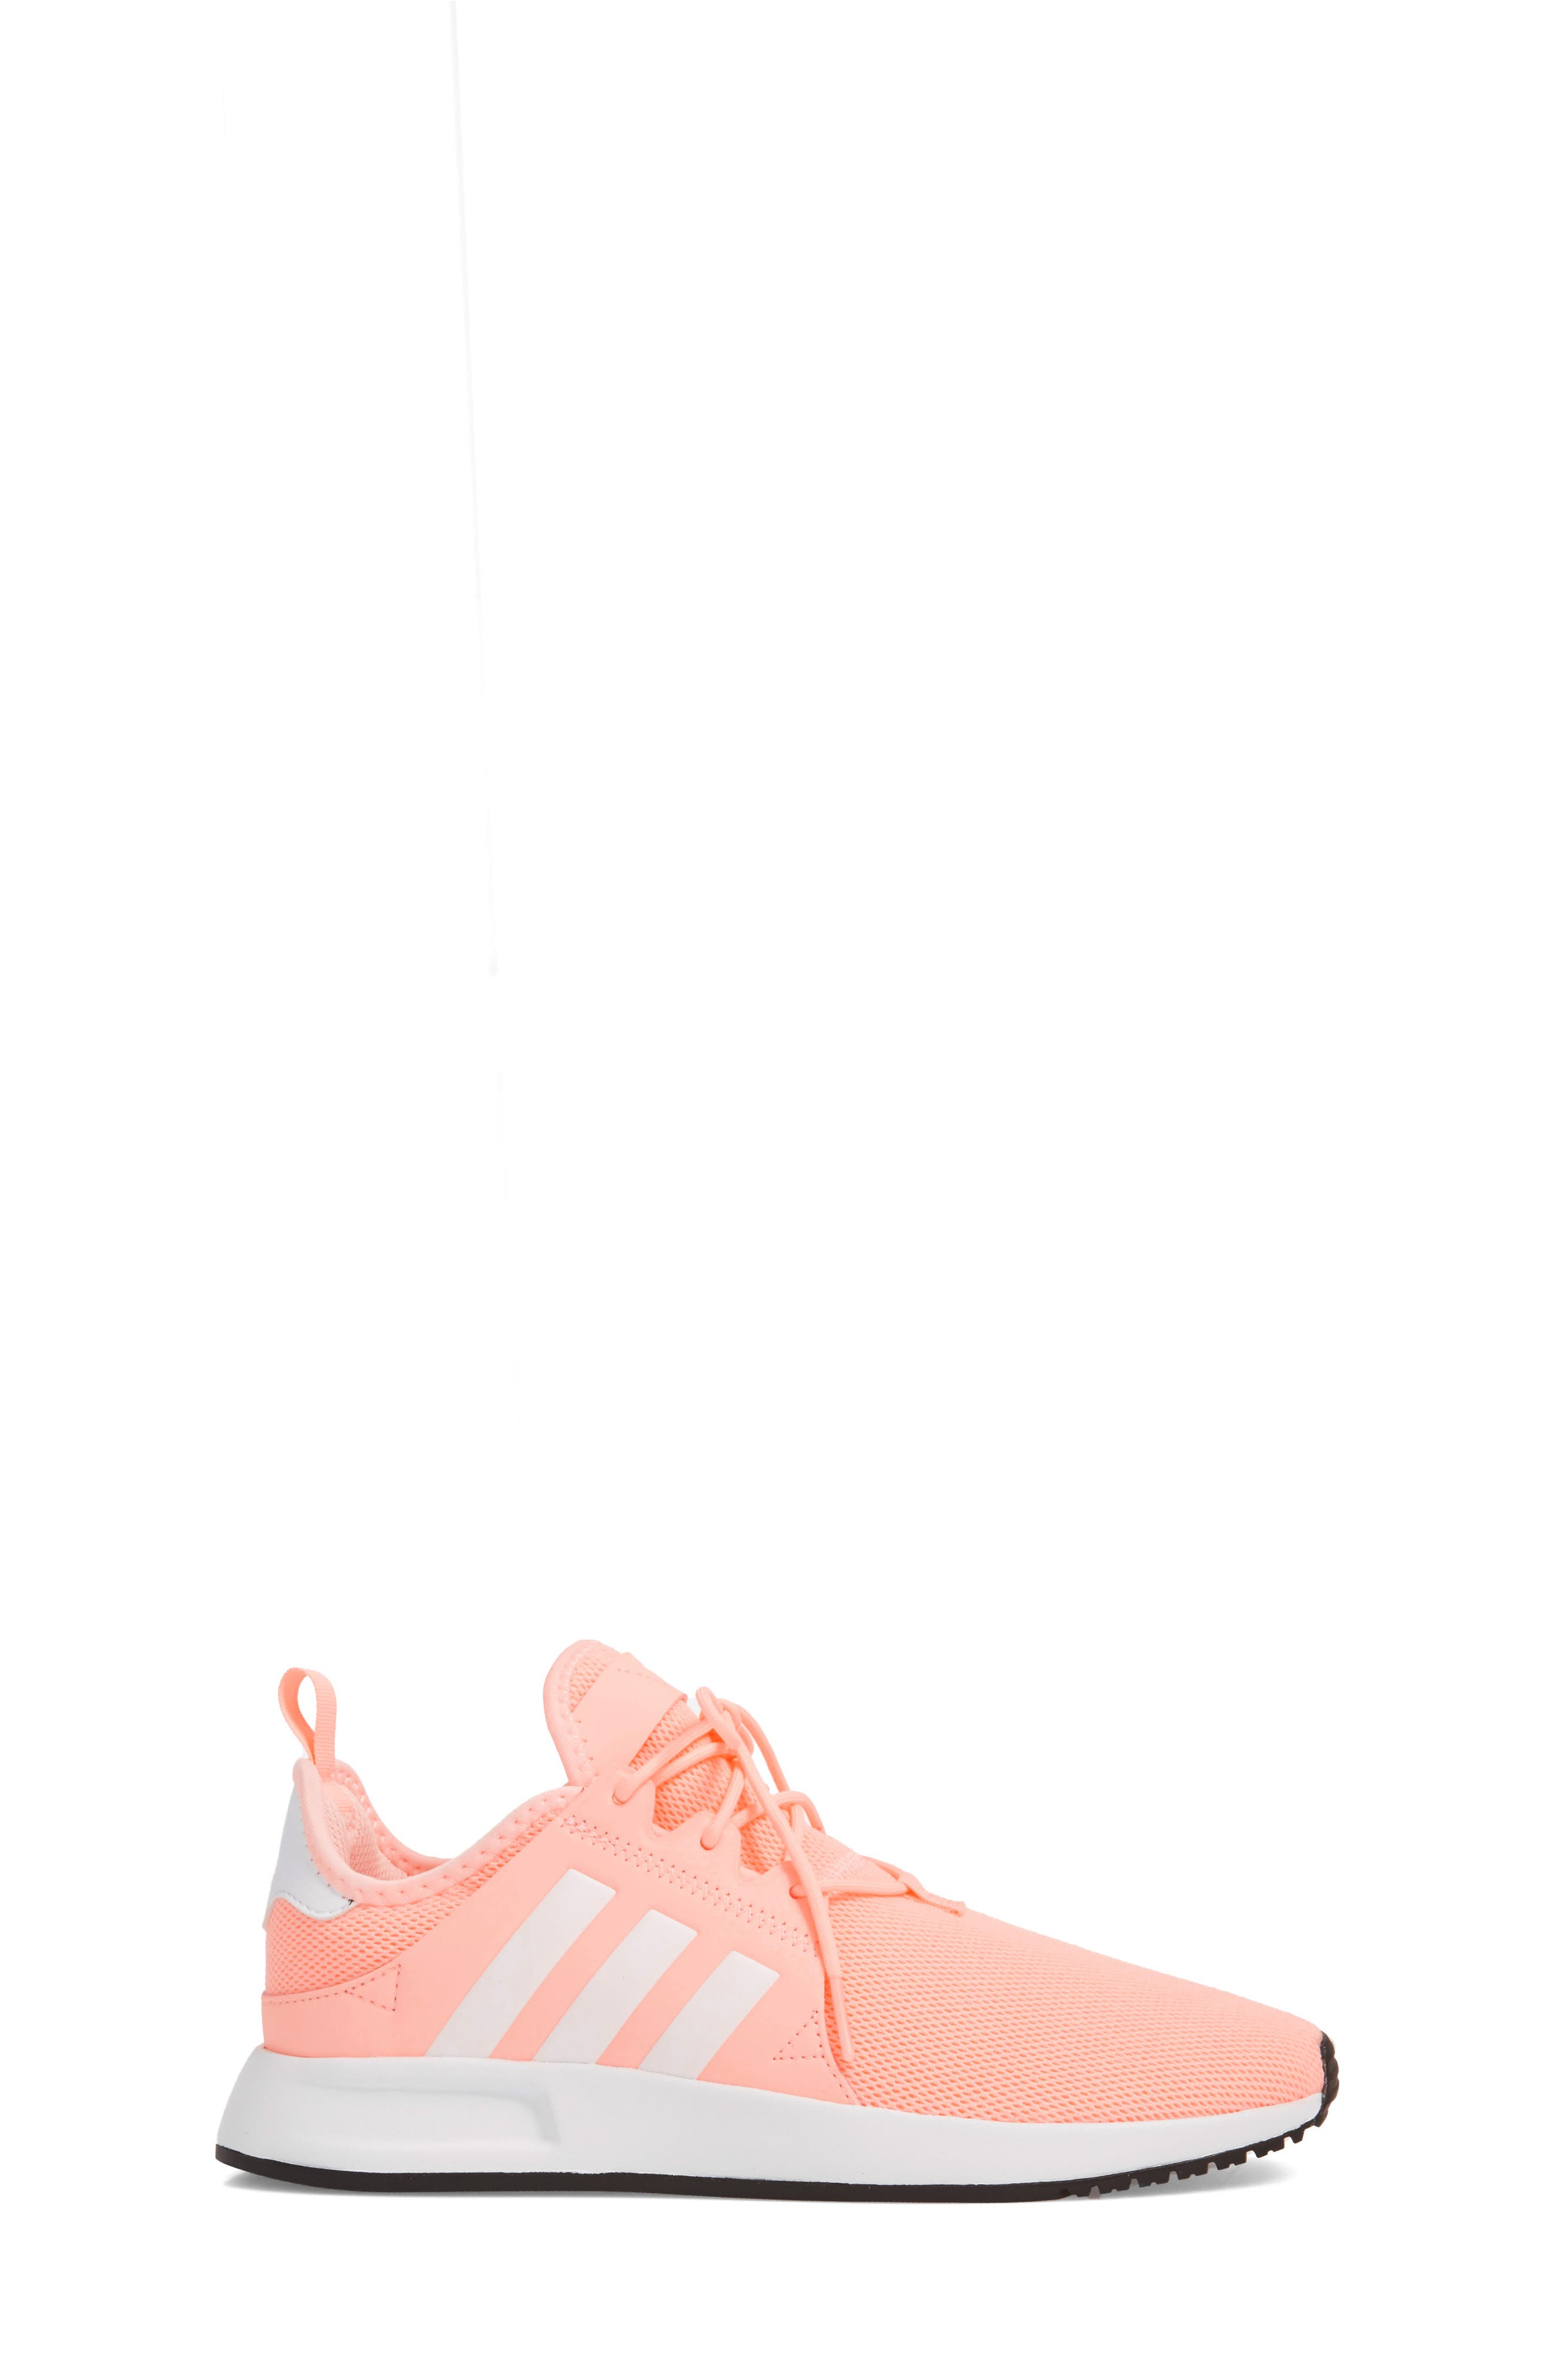 X_PLR Sneaker,                             Alternate thumbnail 4, color,                             Clear Orange/ White